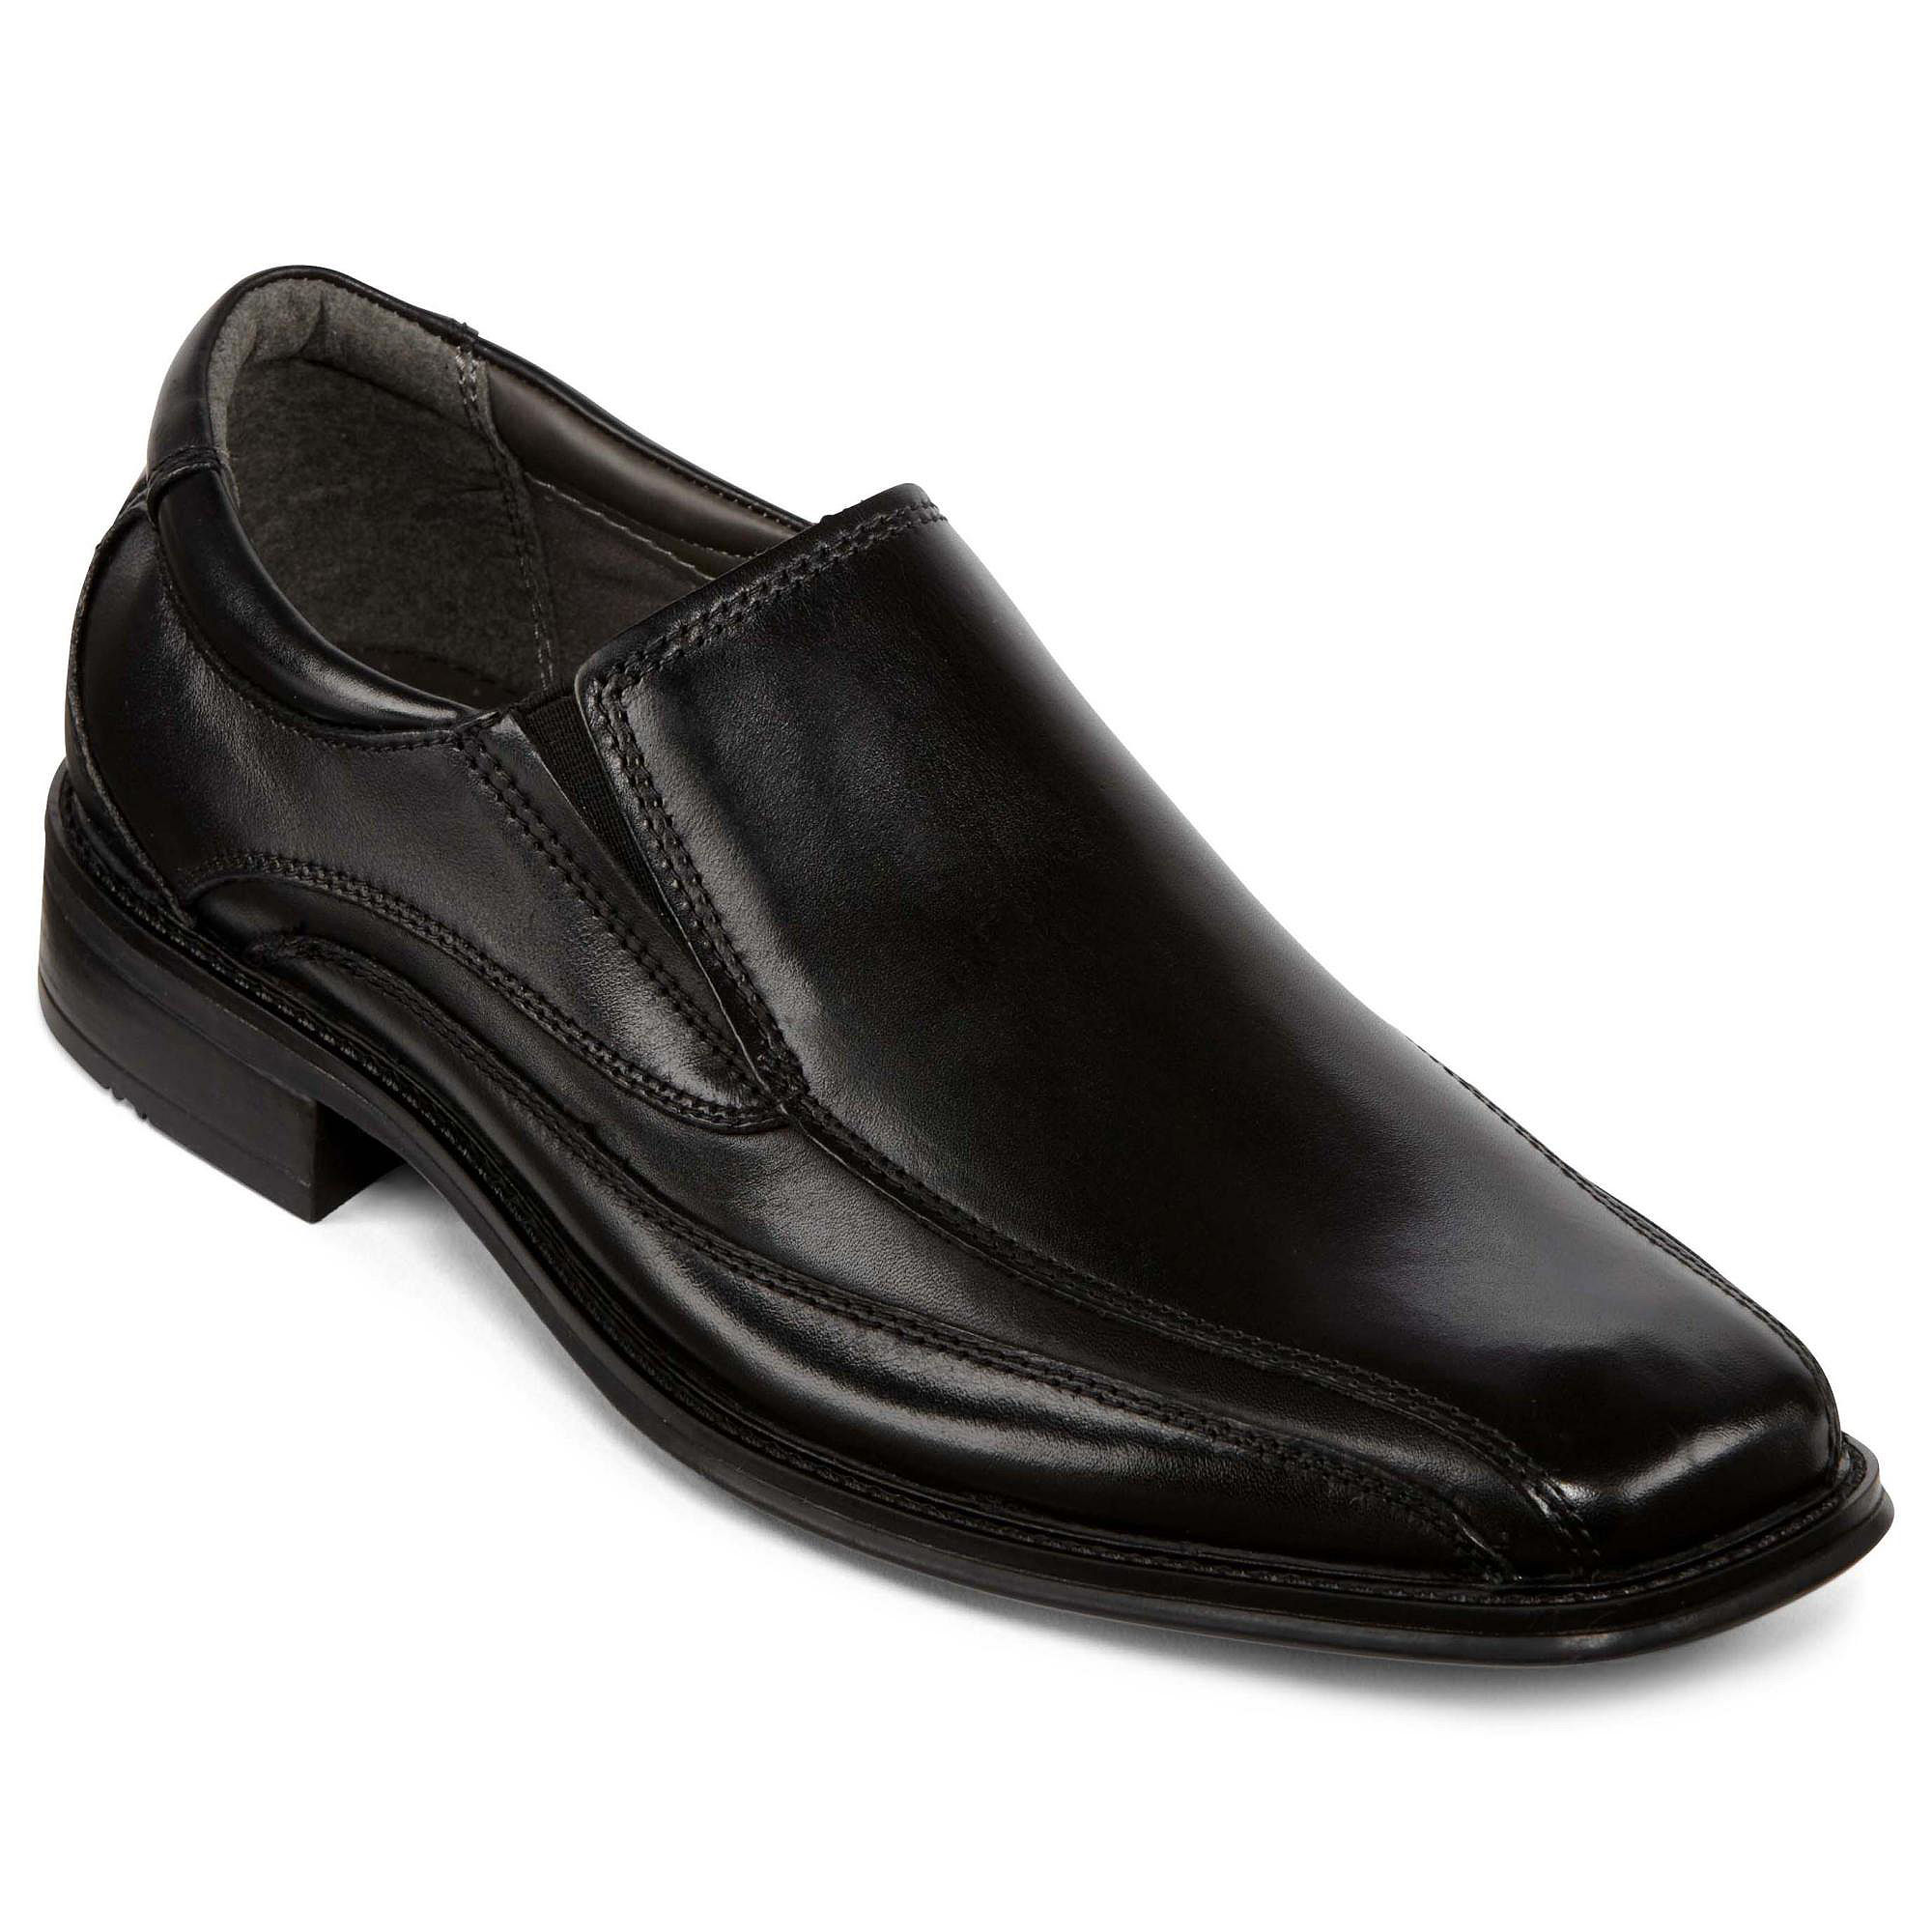 Dockers Franchise Mens Slip-On Dress Shoes